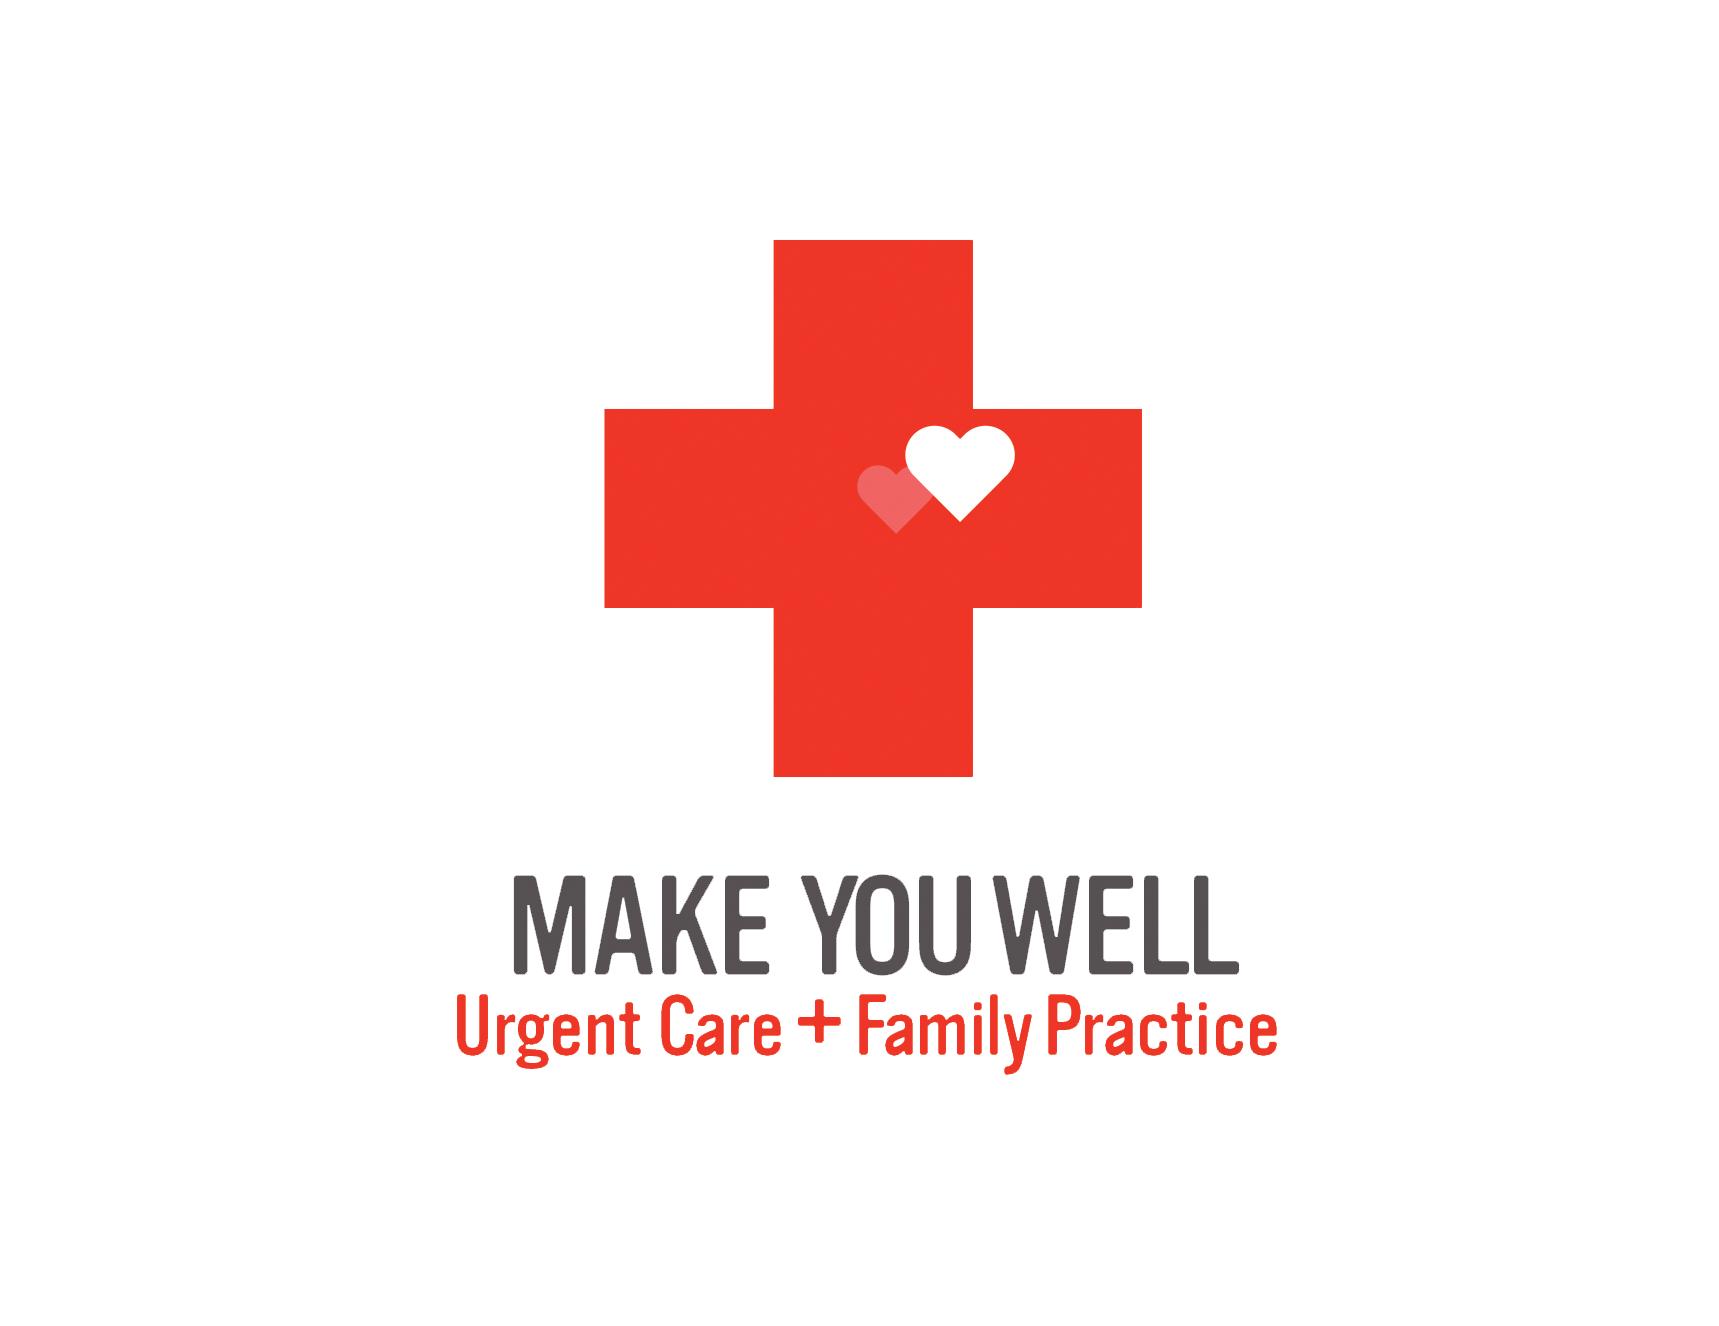 Make You Well Urgent Care + Family Practice - Urgent Care Logo